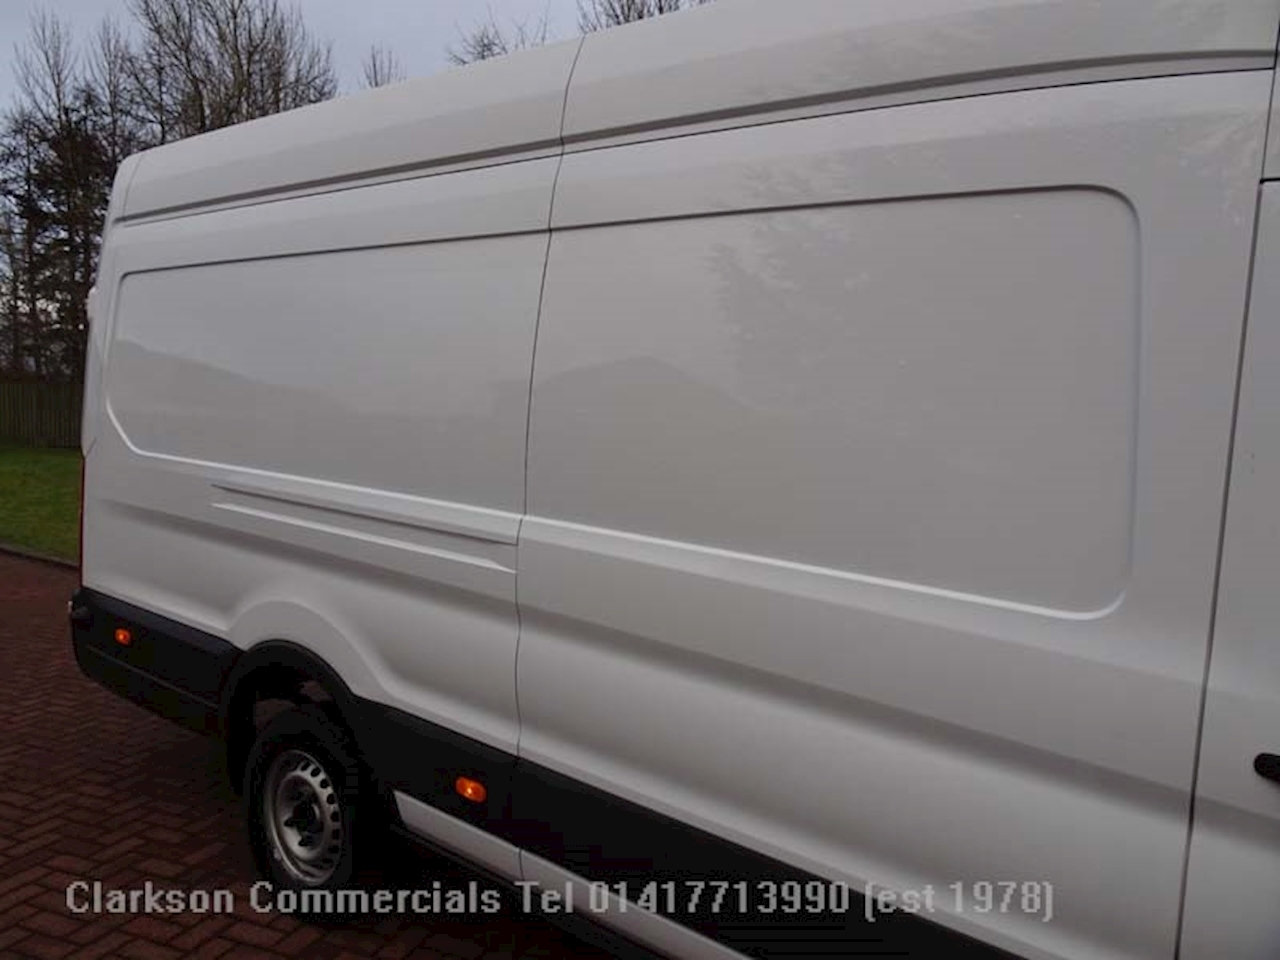 Ford Transit 2.0 350 EcoBlue L4H3 Panel Van Diesel Manual RWD EU6 (105 ps) 2.0 5dr Panel Van Manual Diesel